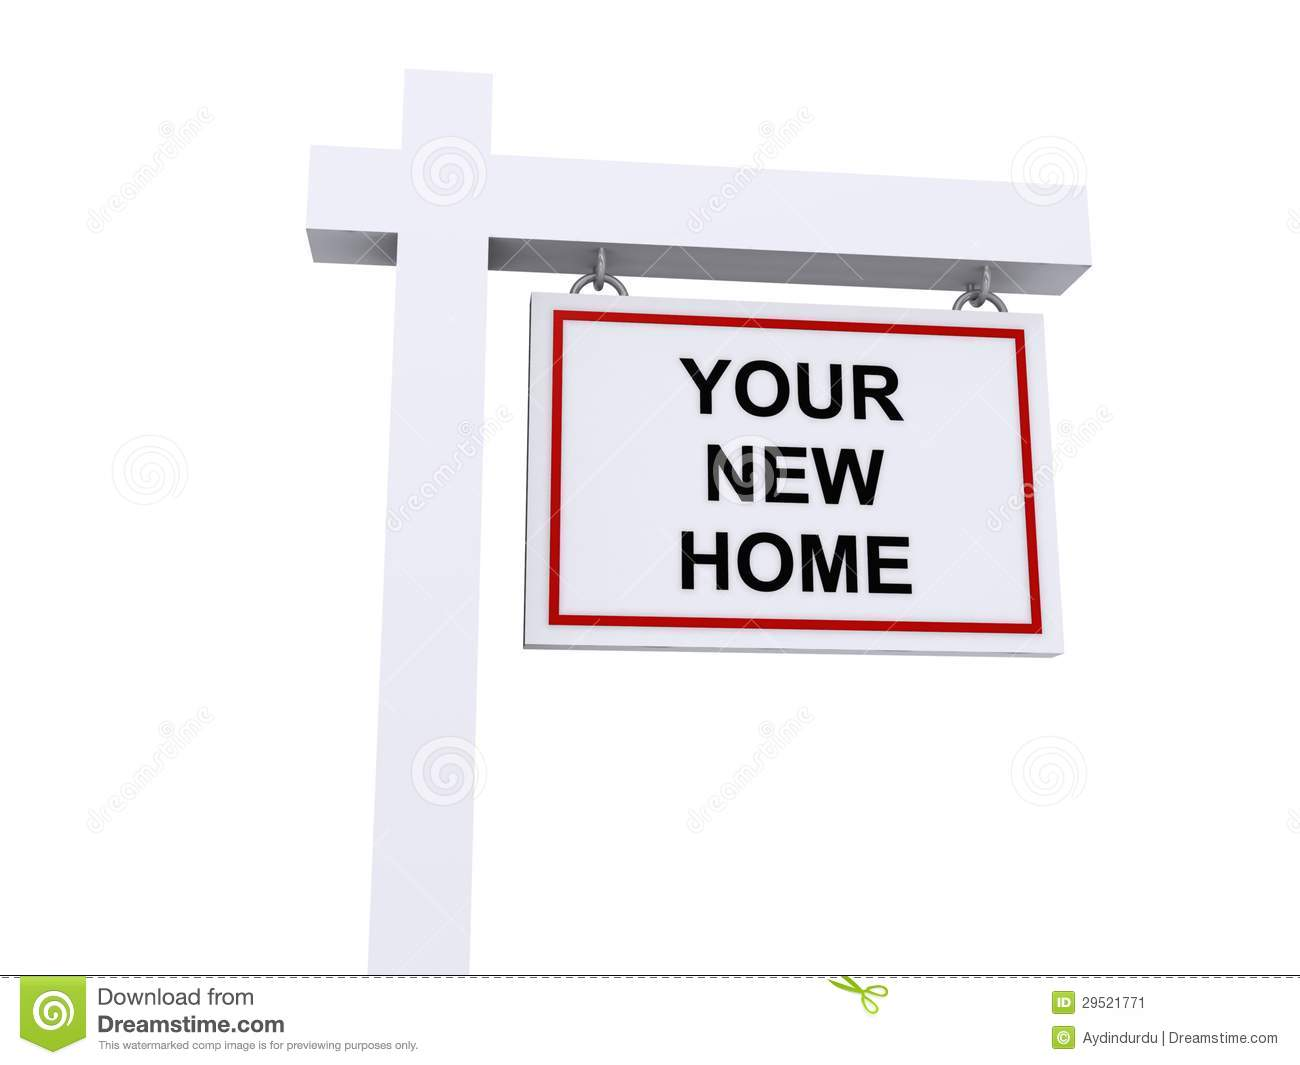 Your new home for sale sign real estate house stock image for New home sign